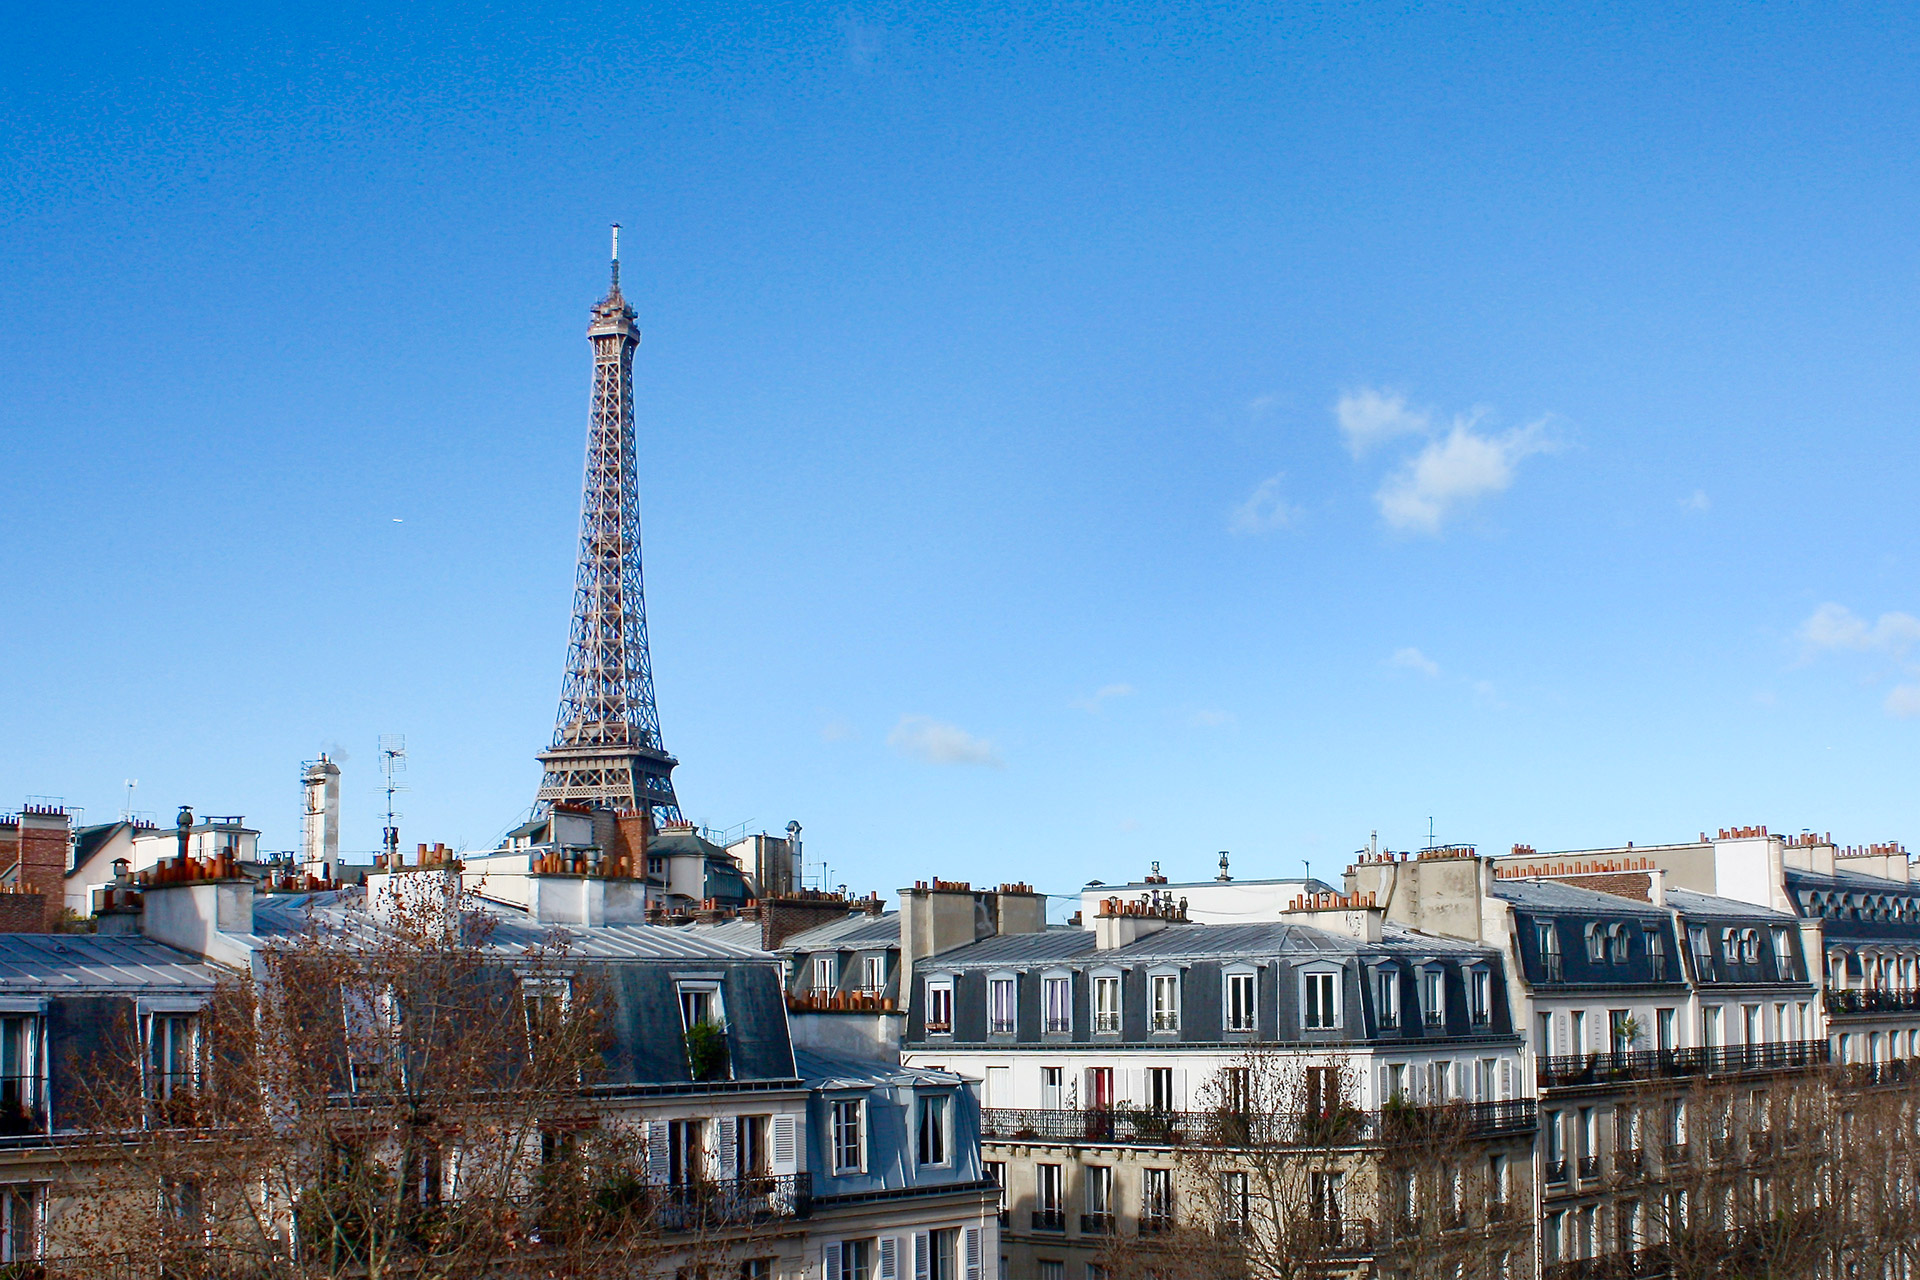 Enjoy this picture perfect view of the Eiffel Tower